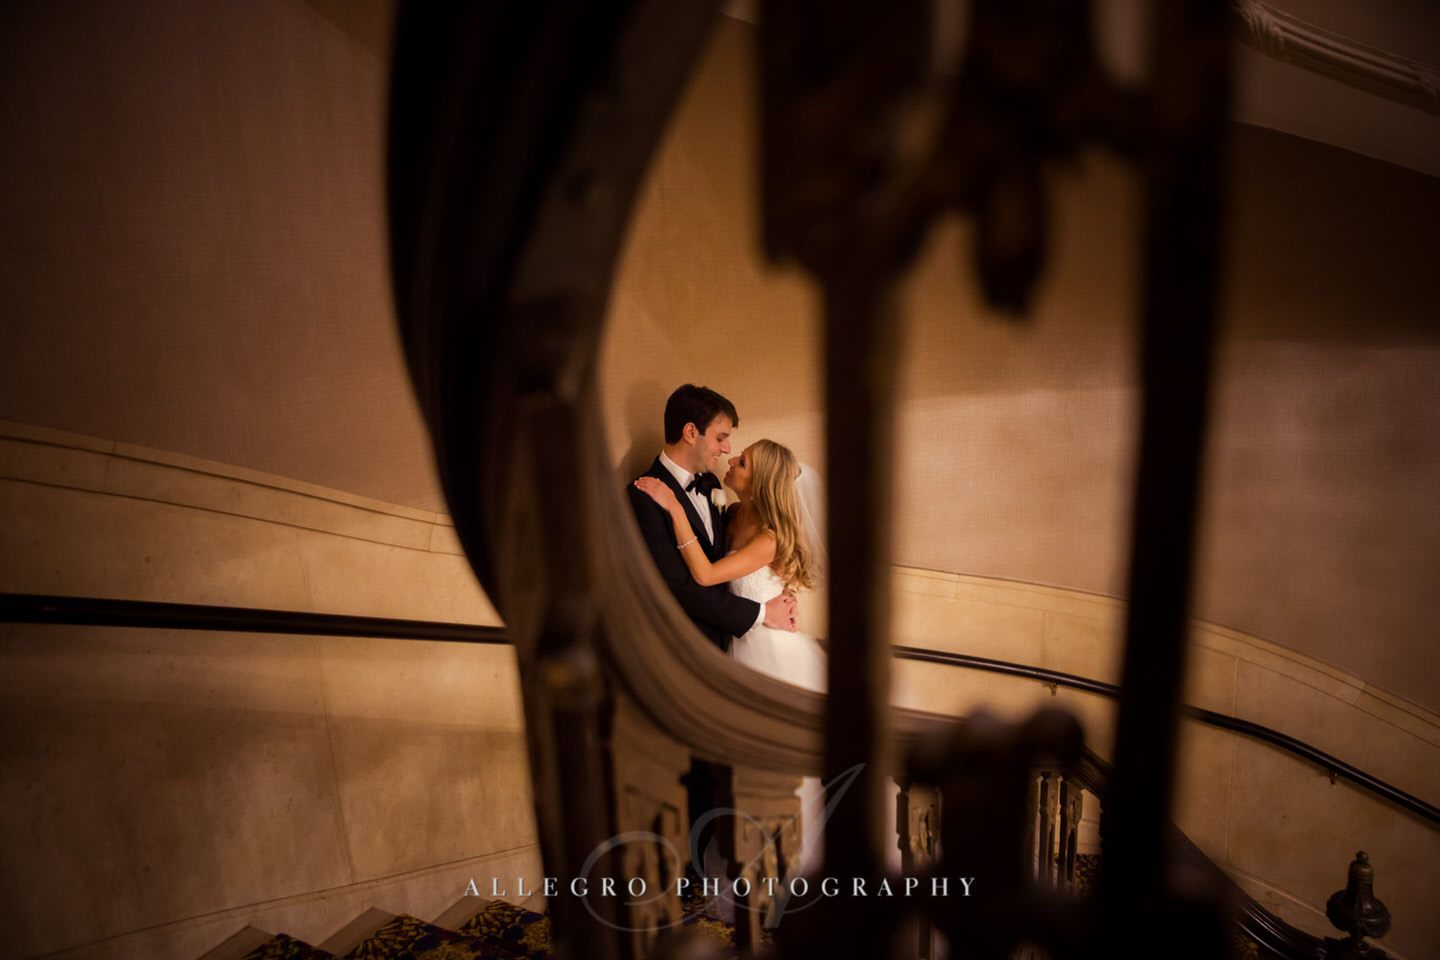 bride and groom portraits - fairmont copley plaza wedding photo by Allegro Photography